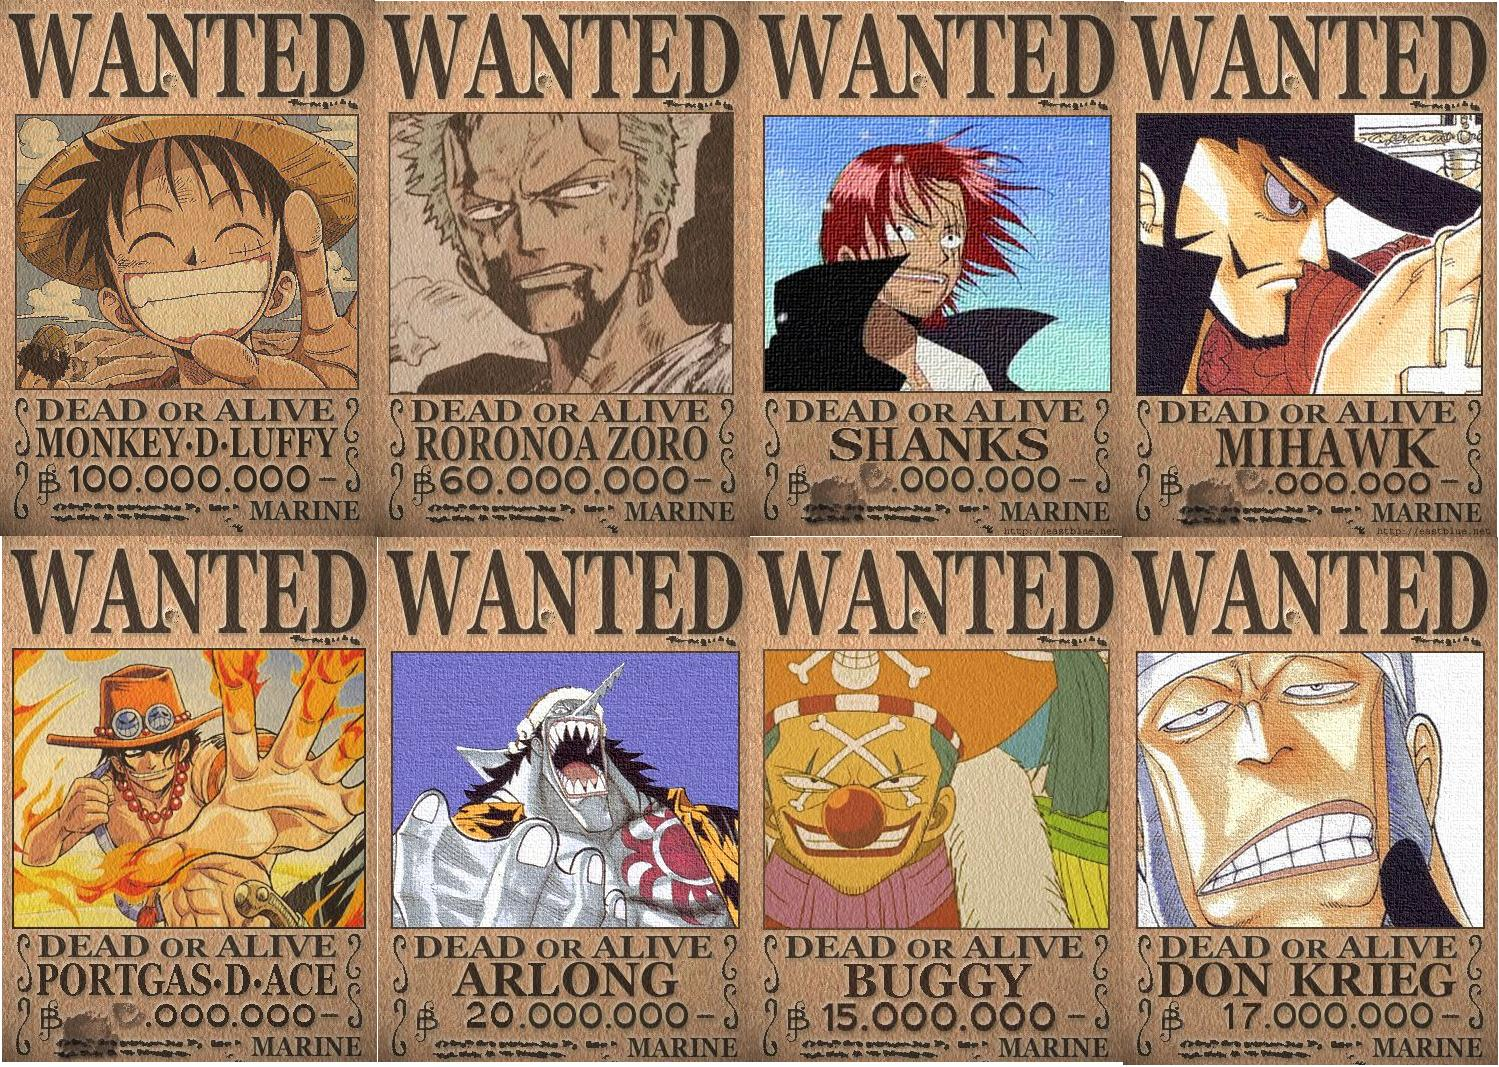 One Piece 15 Wanted by dq 001